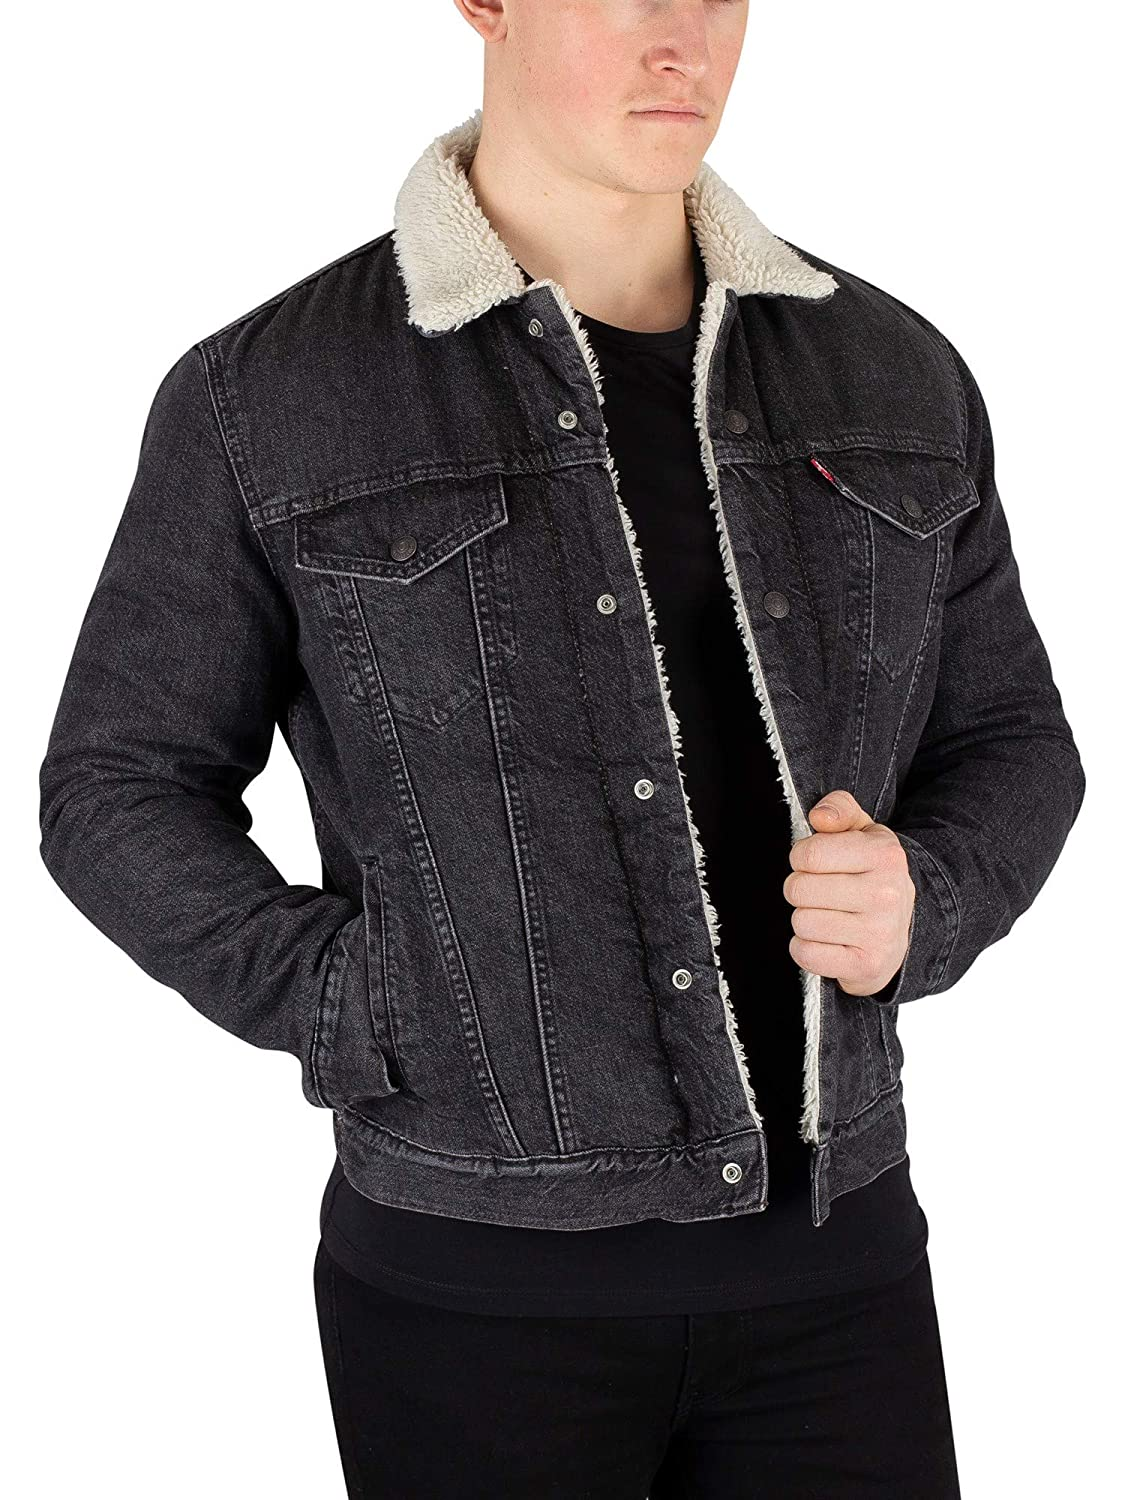 5779526ee60 Levis mens type fegin sherpa trucker jacket grey at amazon mens clothing  store jpg 1125x1500 Levis